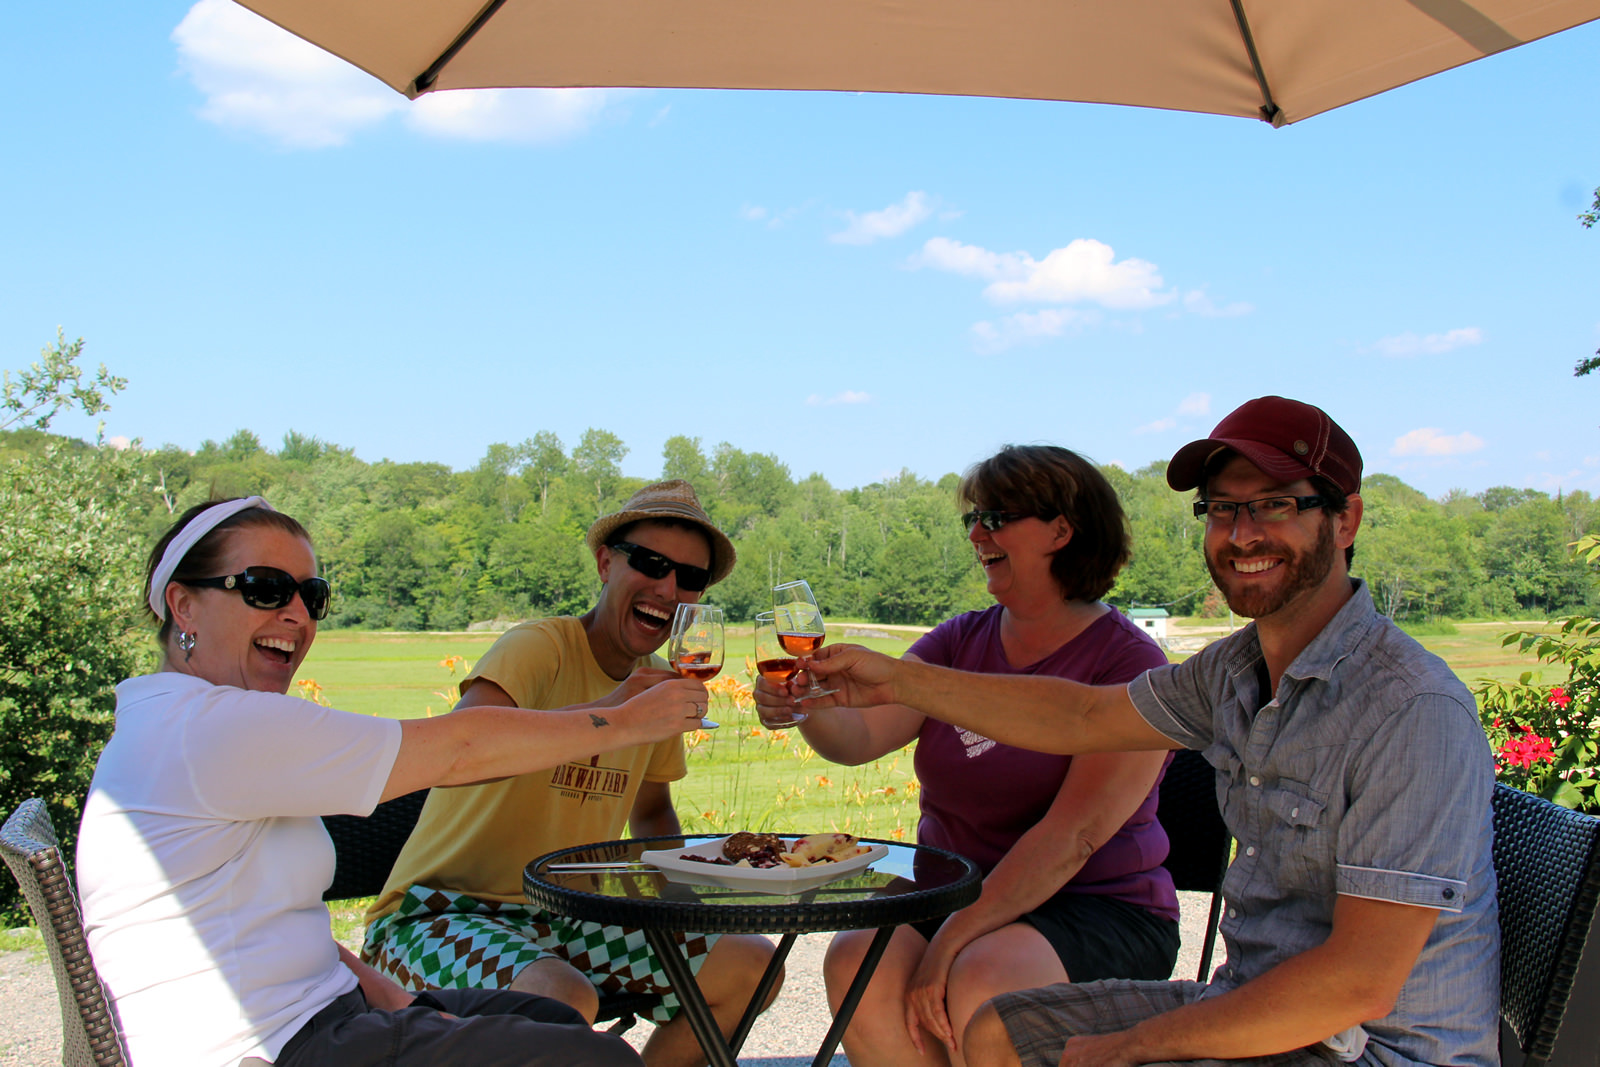 two couples touching glasses sitting on an outdoor patio in summer